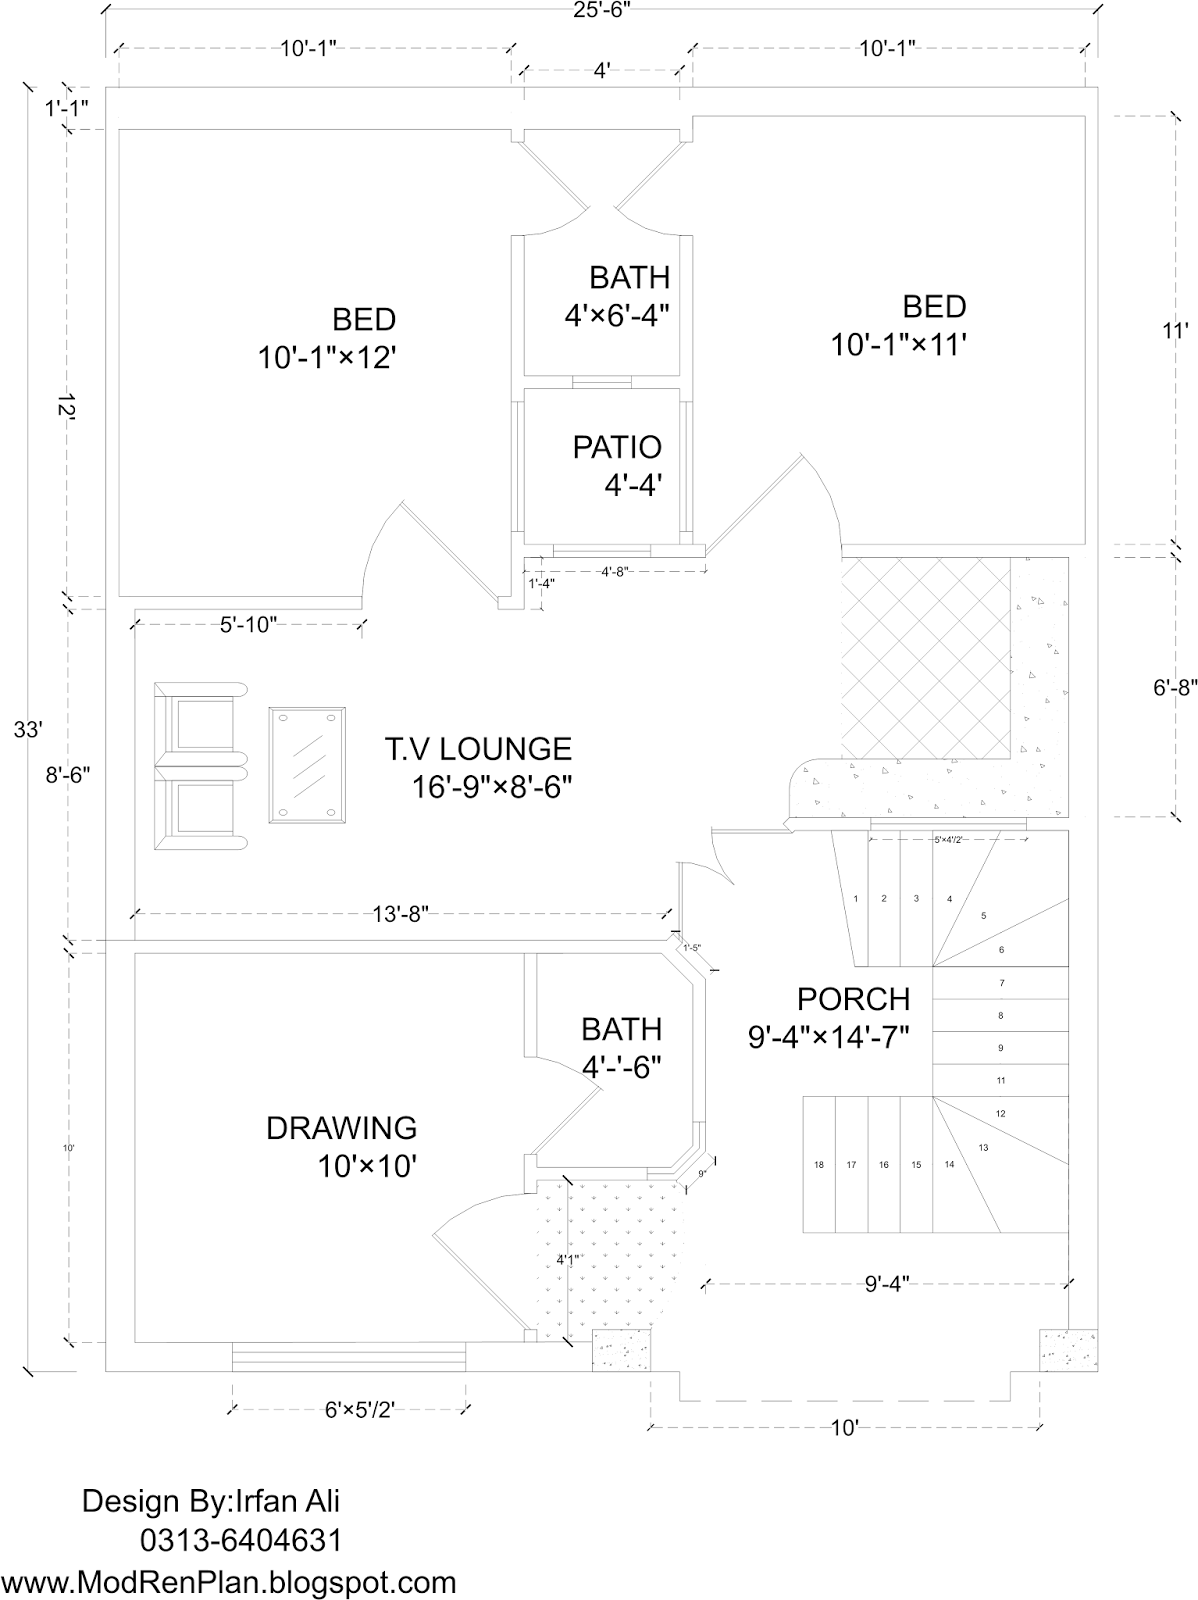 How To Draw The Front Elevation Of A Building : Marla house plan and map with detail